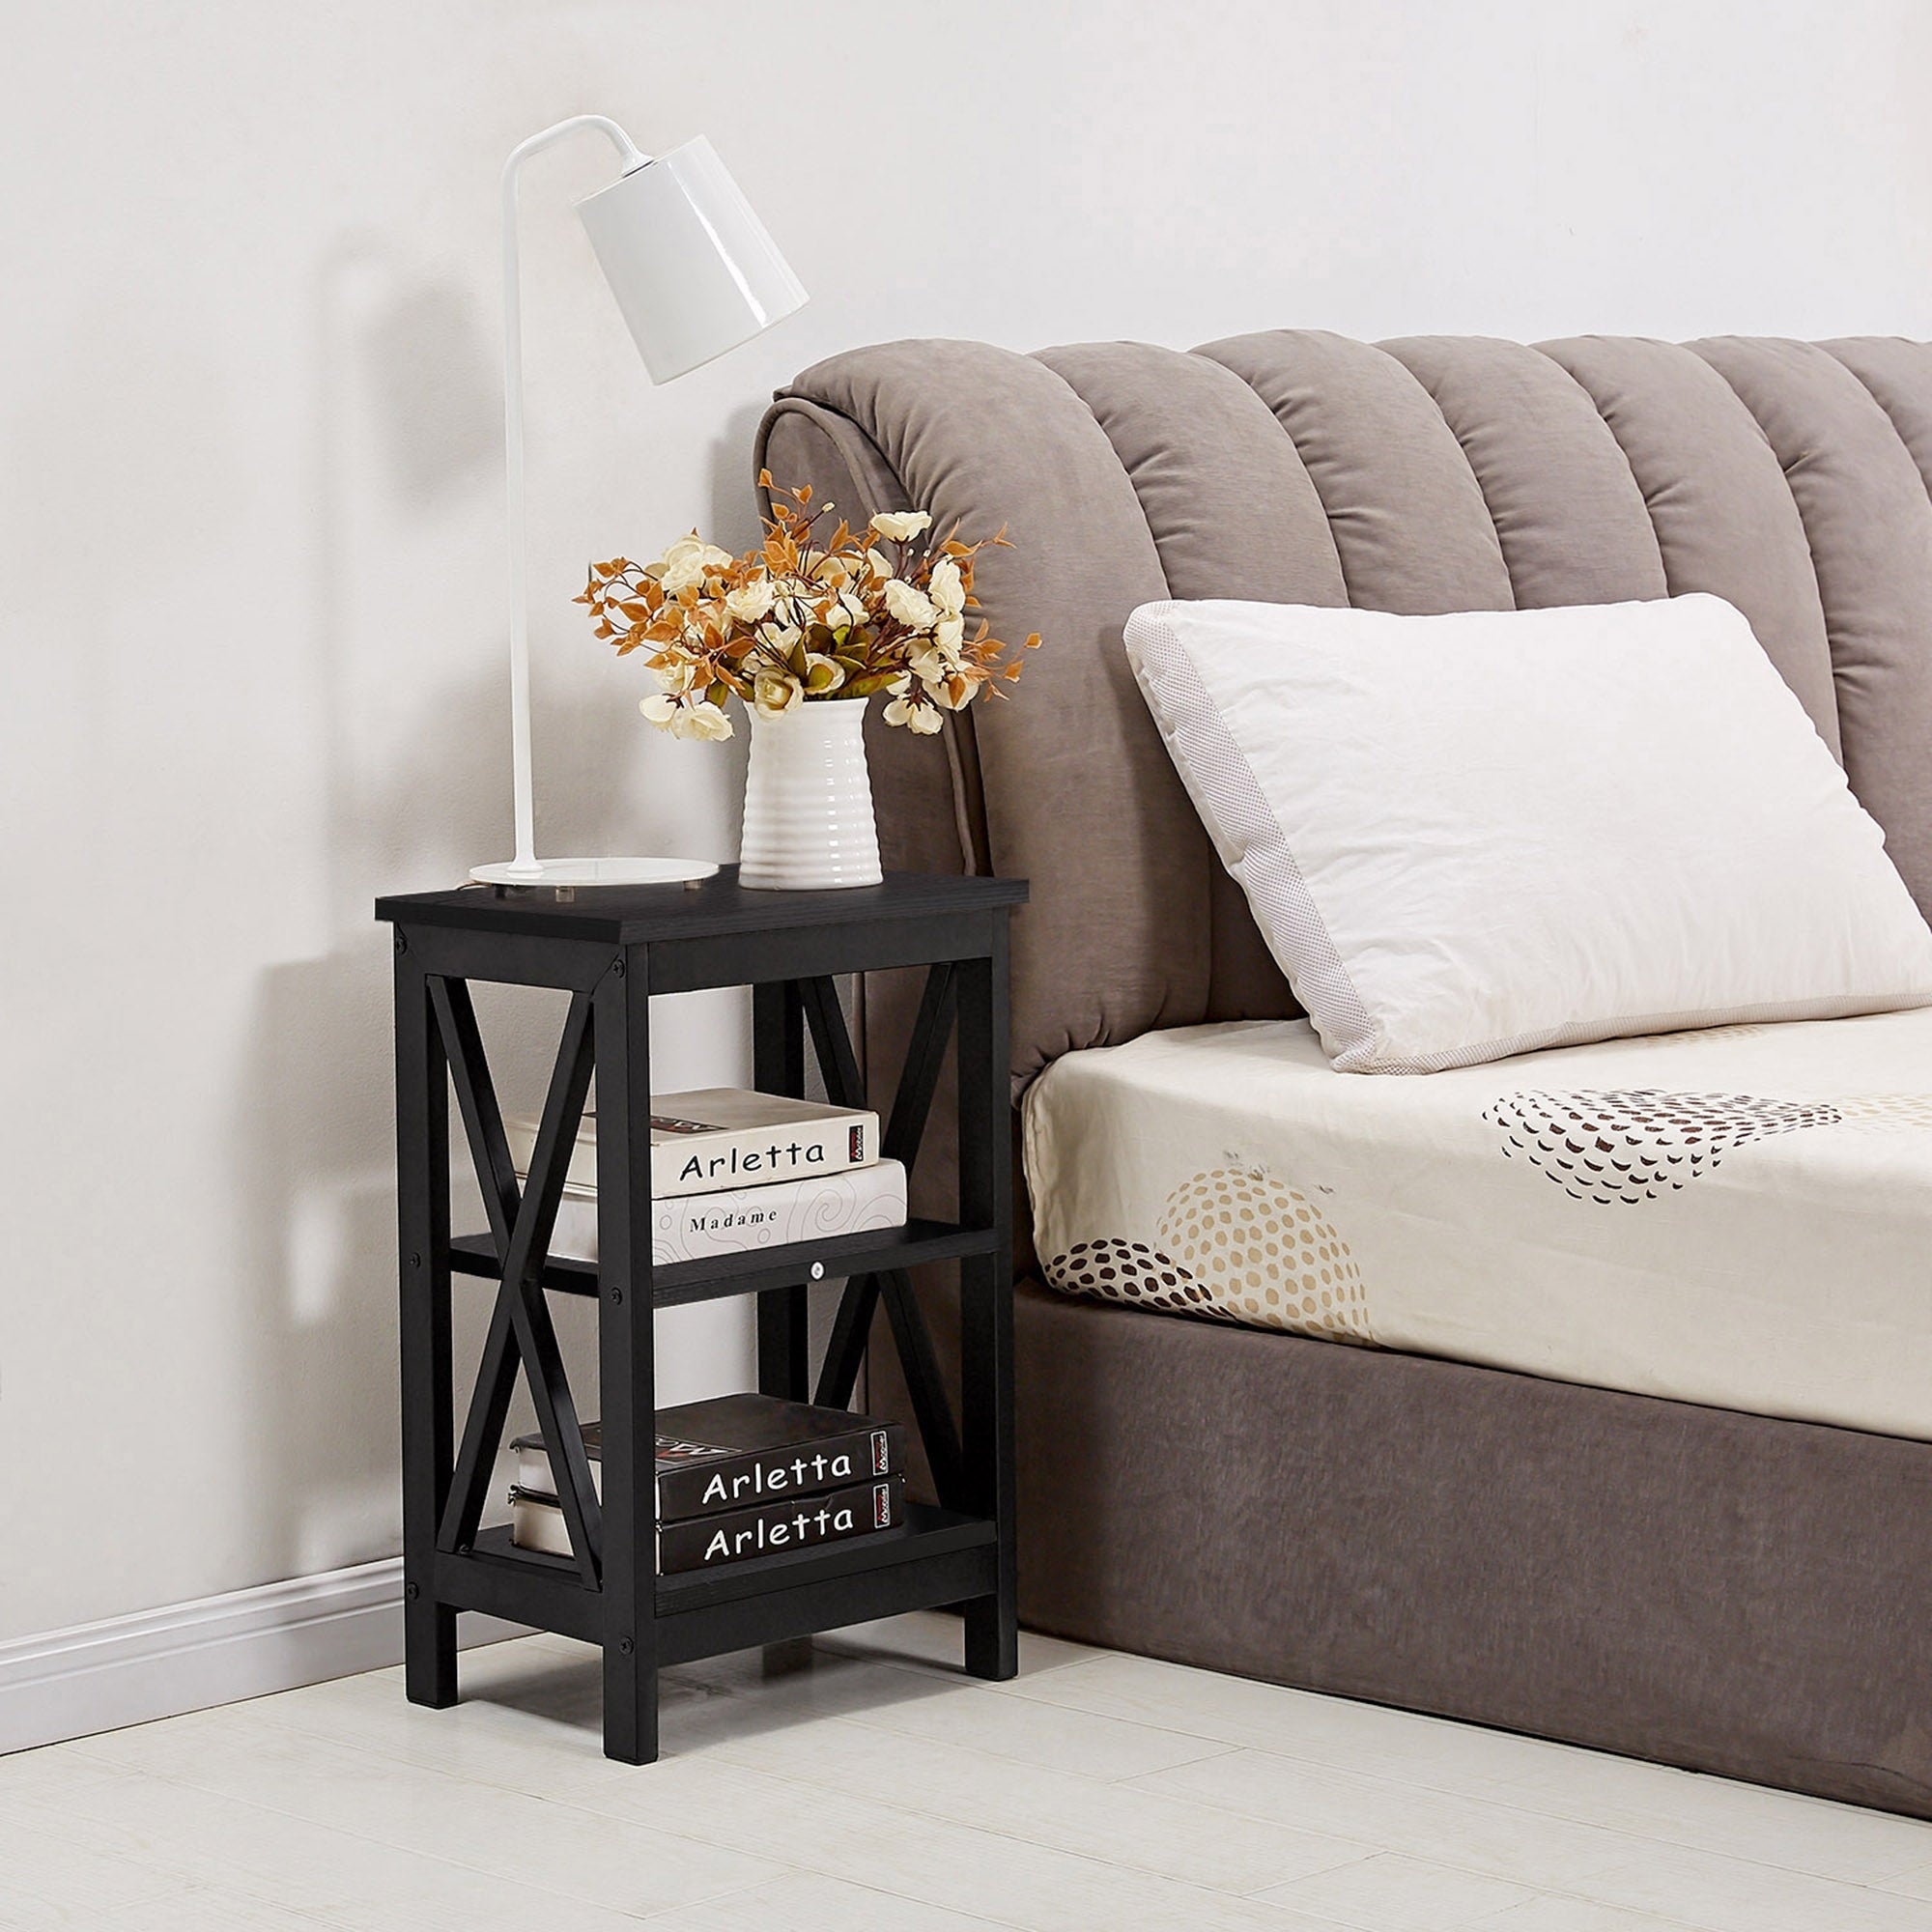 Vecelo 3 Tier Nightstand Bedside Table Sofa Table End Table X Frame Black Brown 2 Options Overstock 27468613 Black